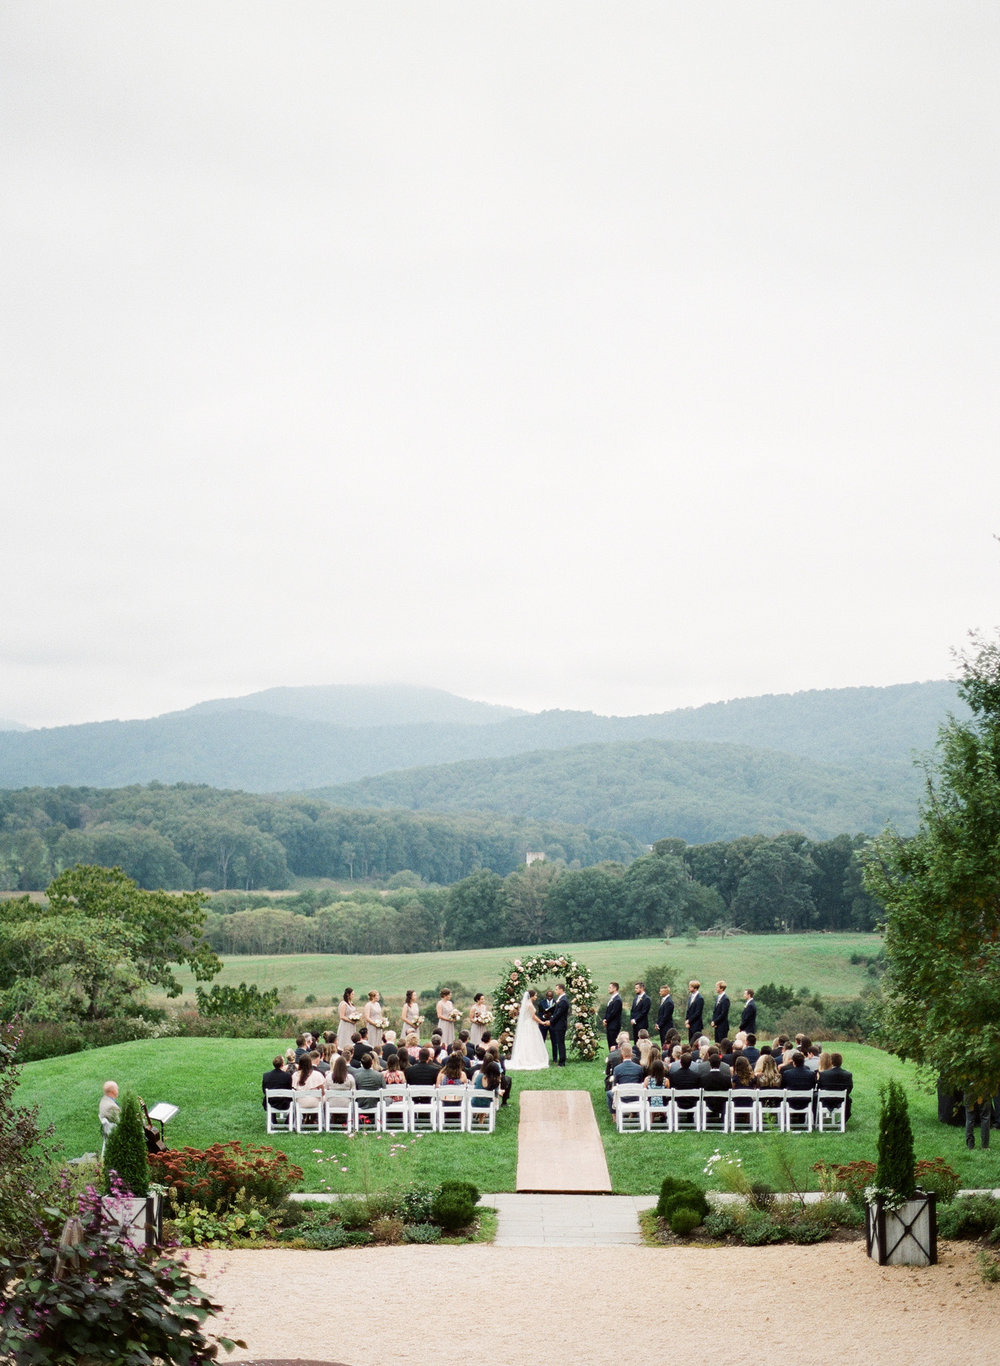 Pippin-Hill-Farm-and-Vinyards-Wedding-Film-Photography-28.jpg